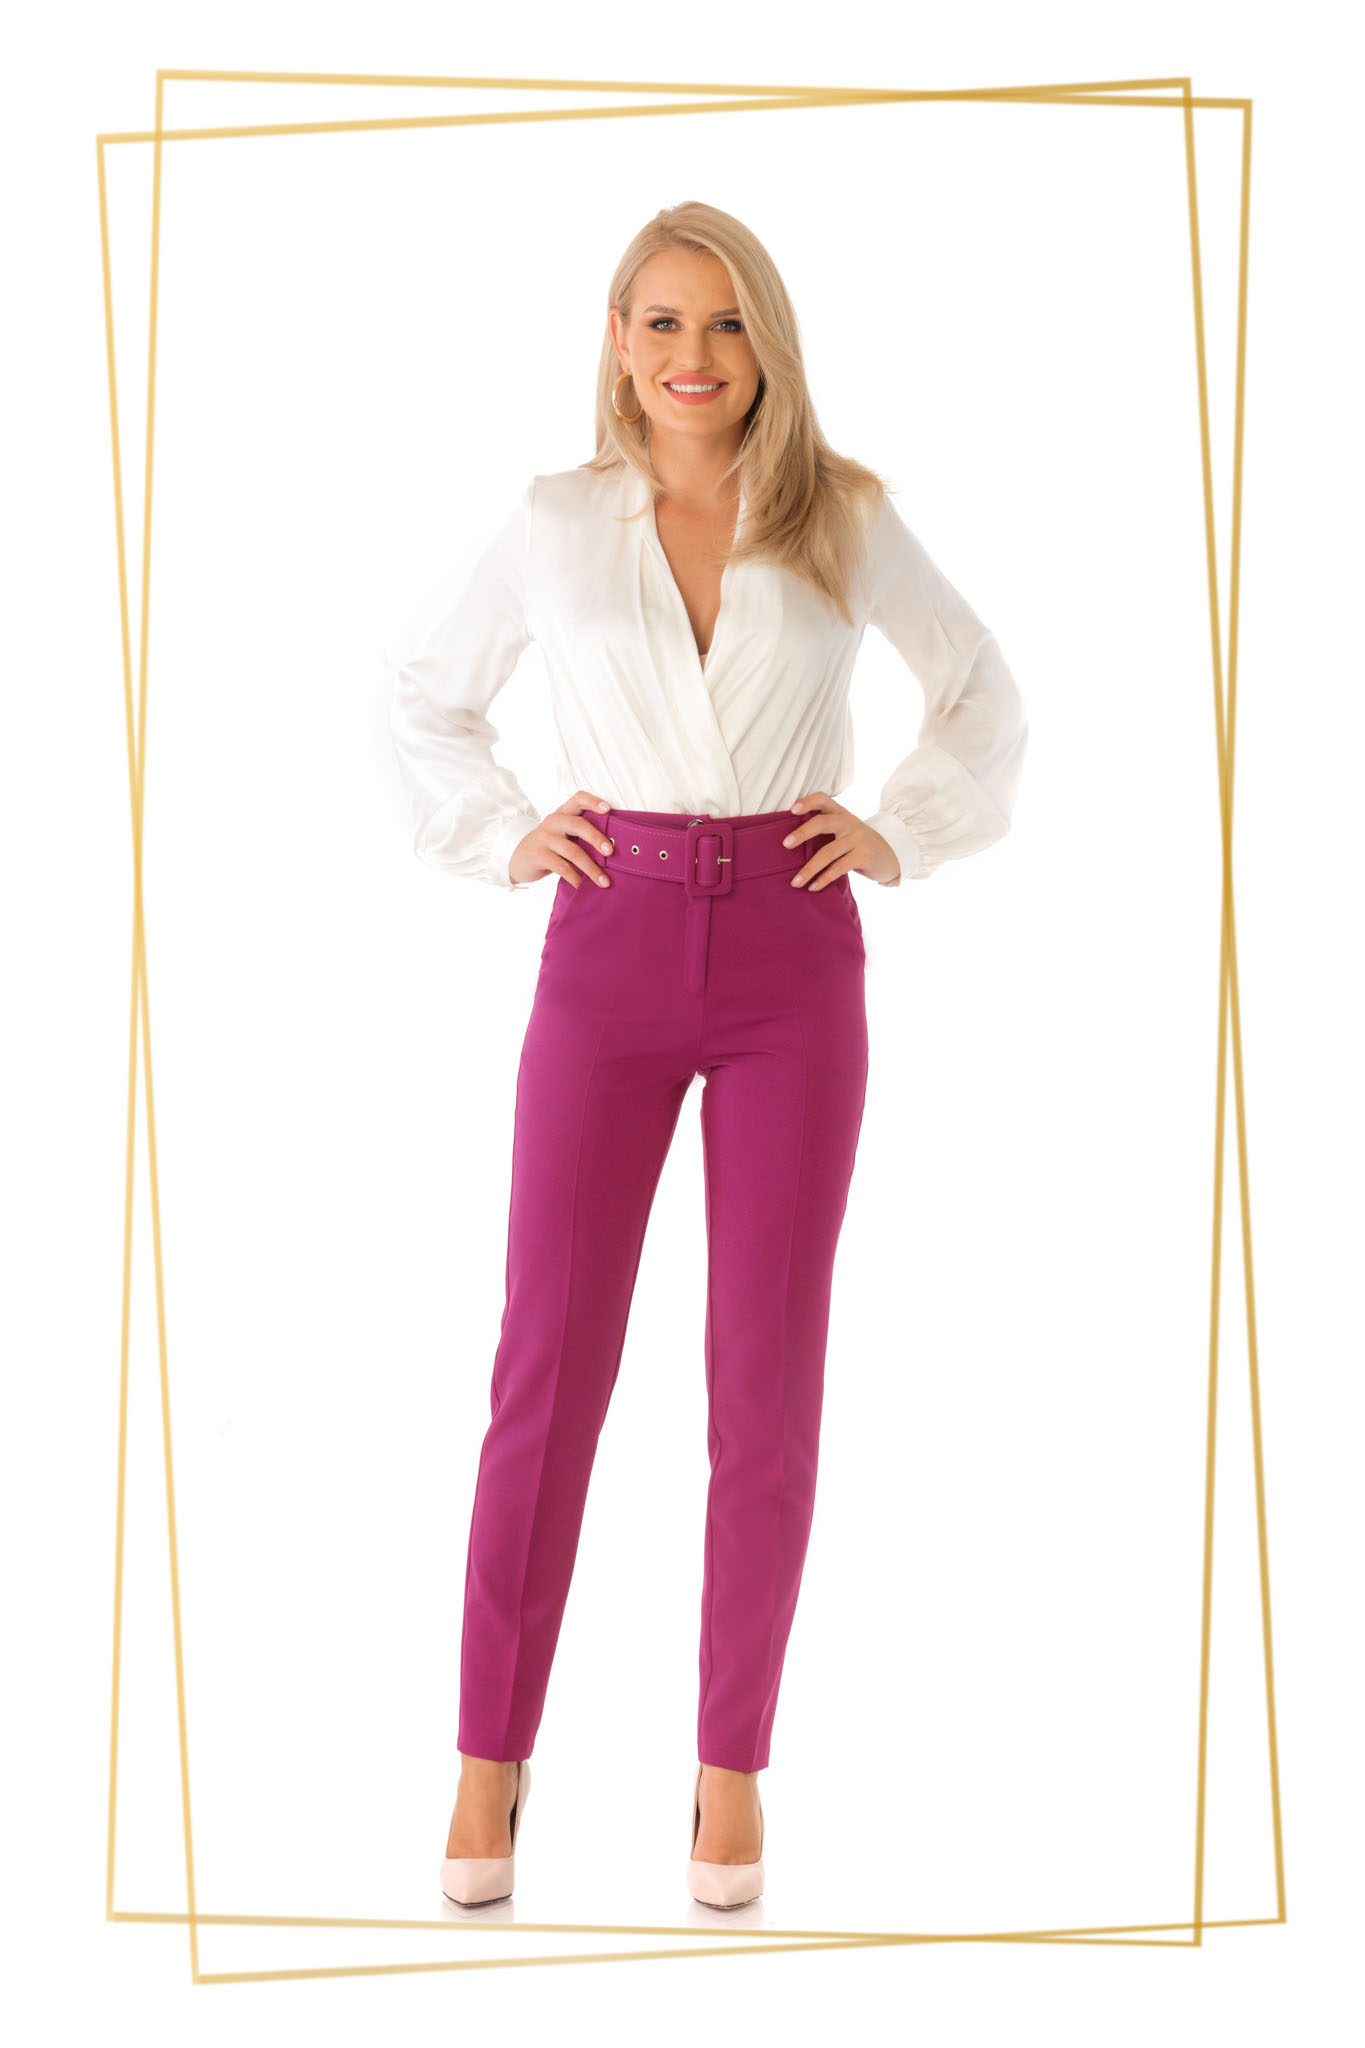 Fuchsia trousers office conical high waisted slightly elastic fabric accessorized with belt